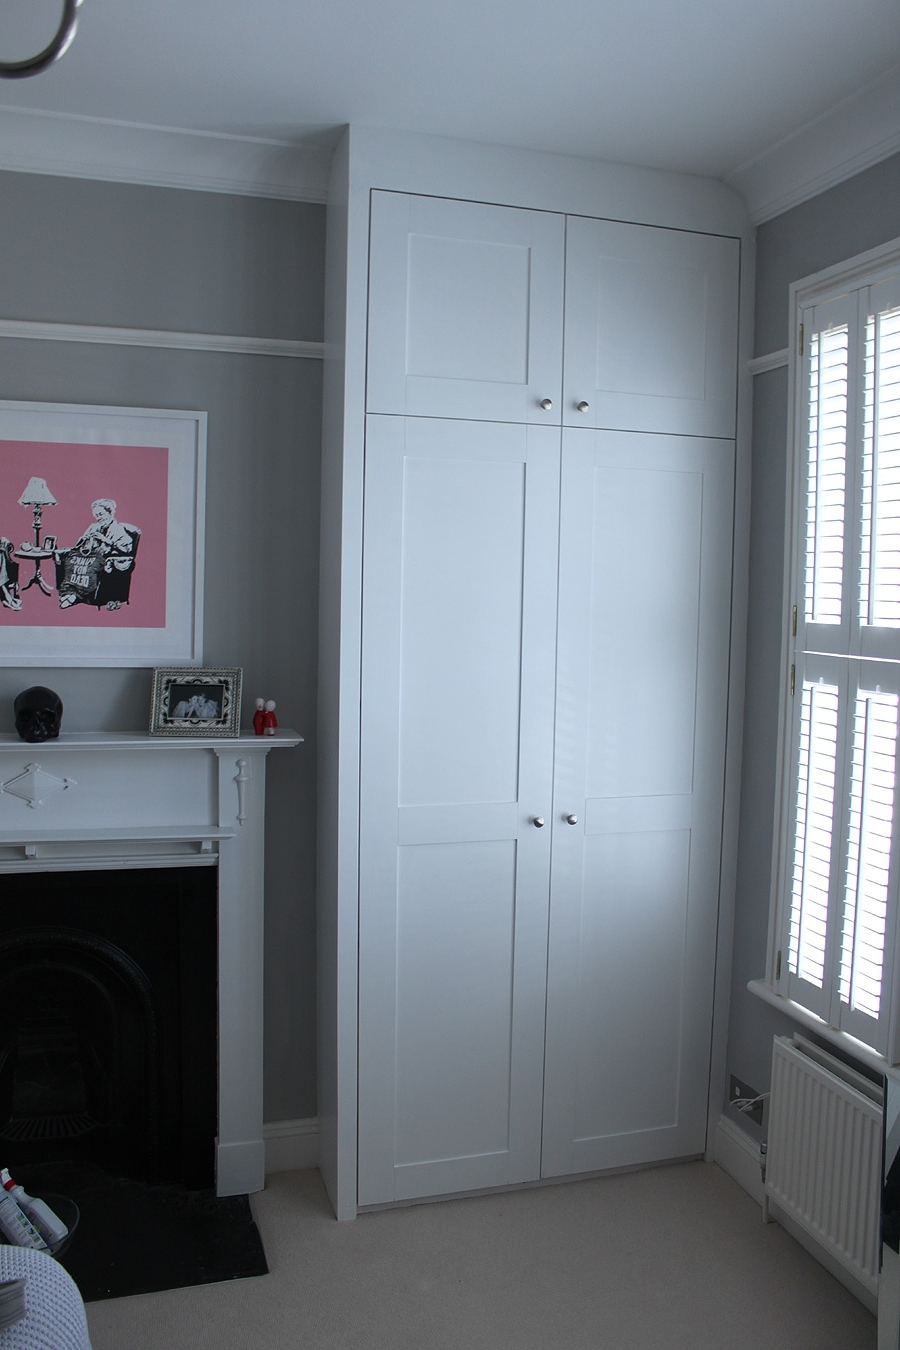 Favorite Fitted Wardrobes, Bookcases, Shelving, Floating Shelves, London Throughout Made To Measure Cabinets (View 3 of 15)